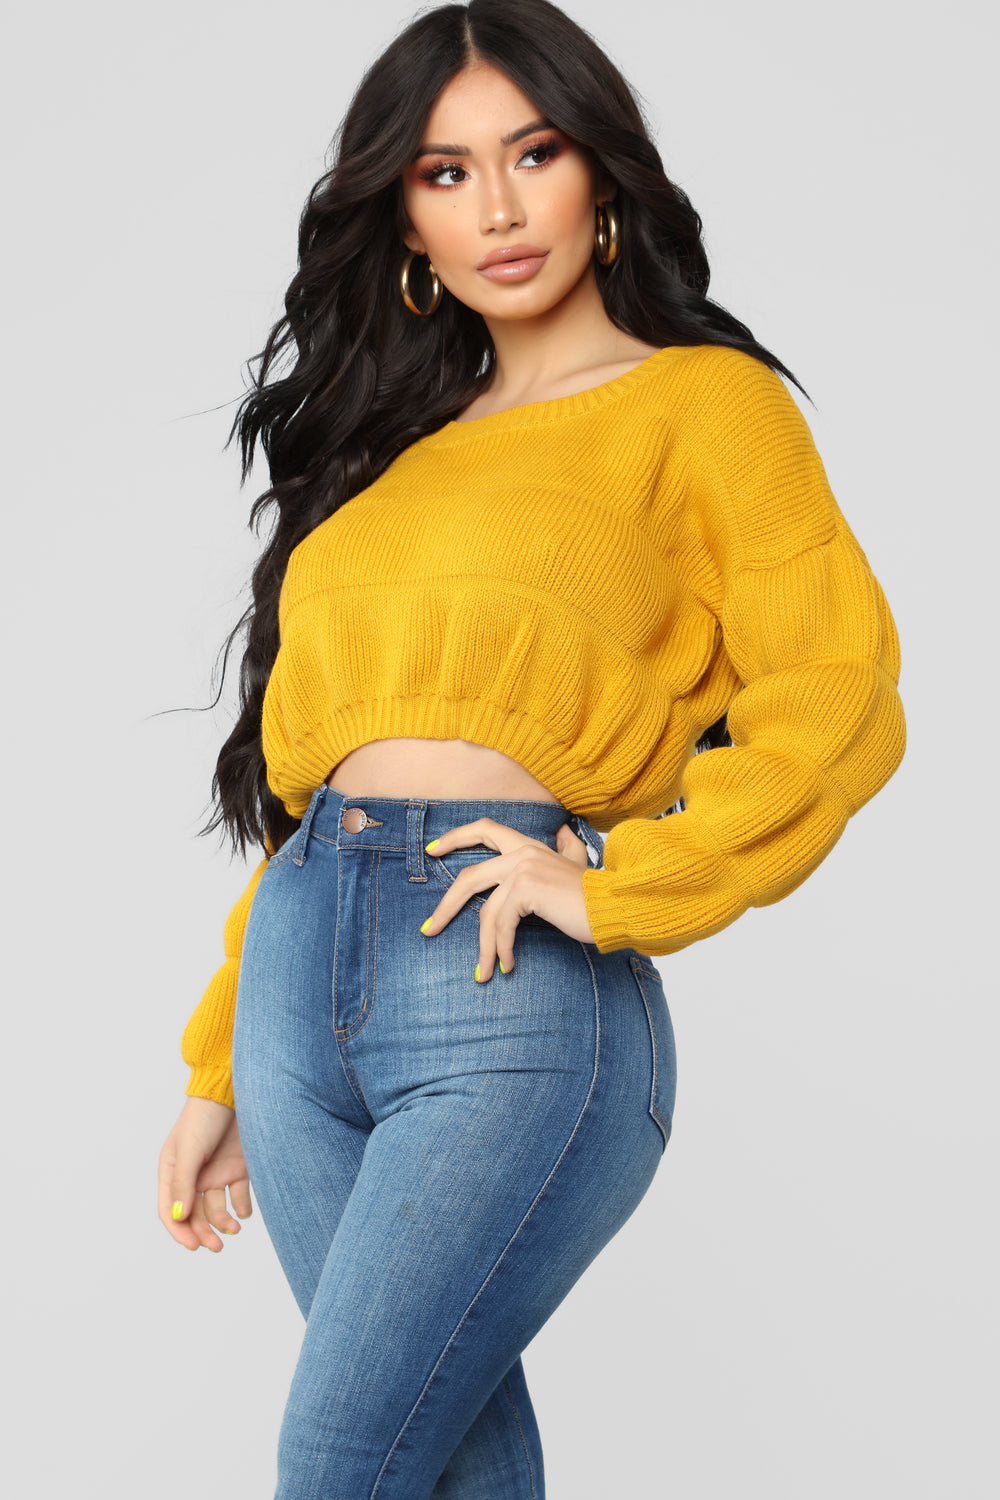 Don't Keep Me Waiting Sweater - Mustard